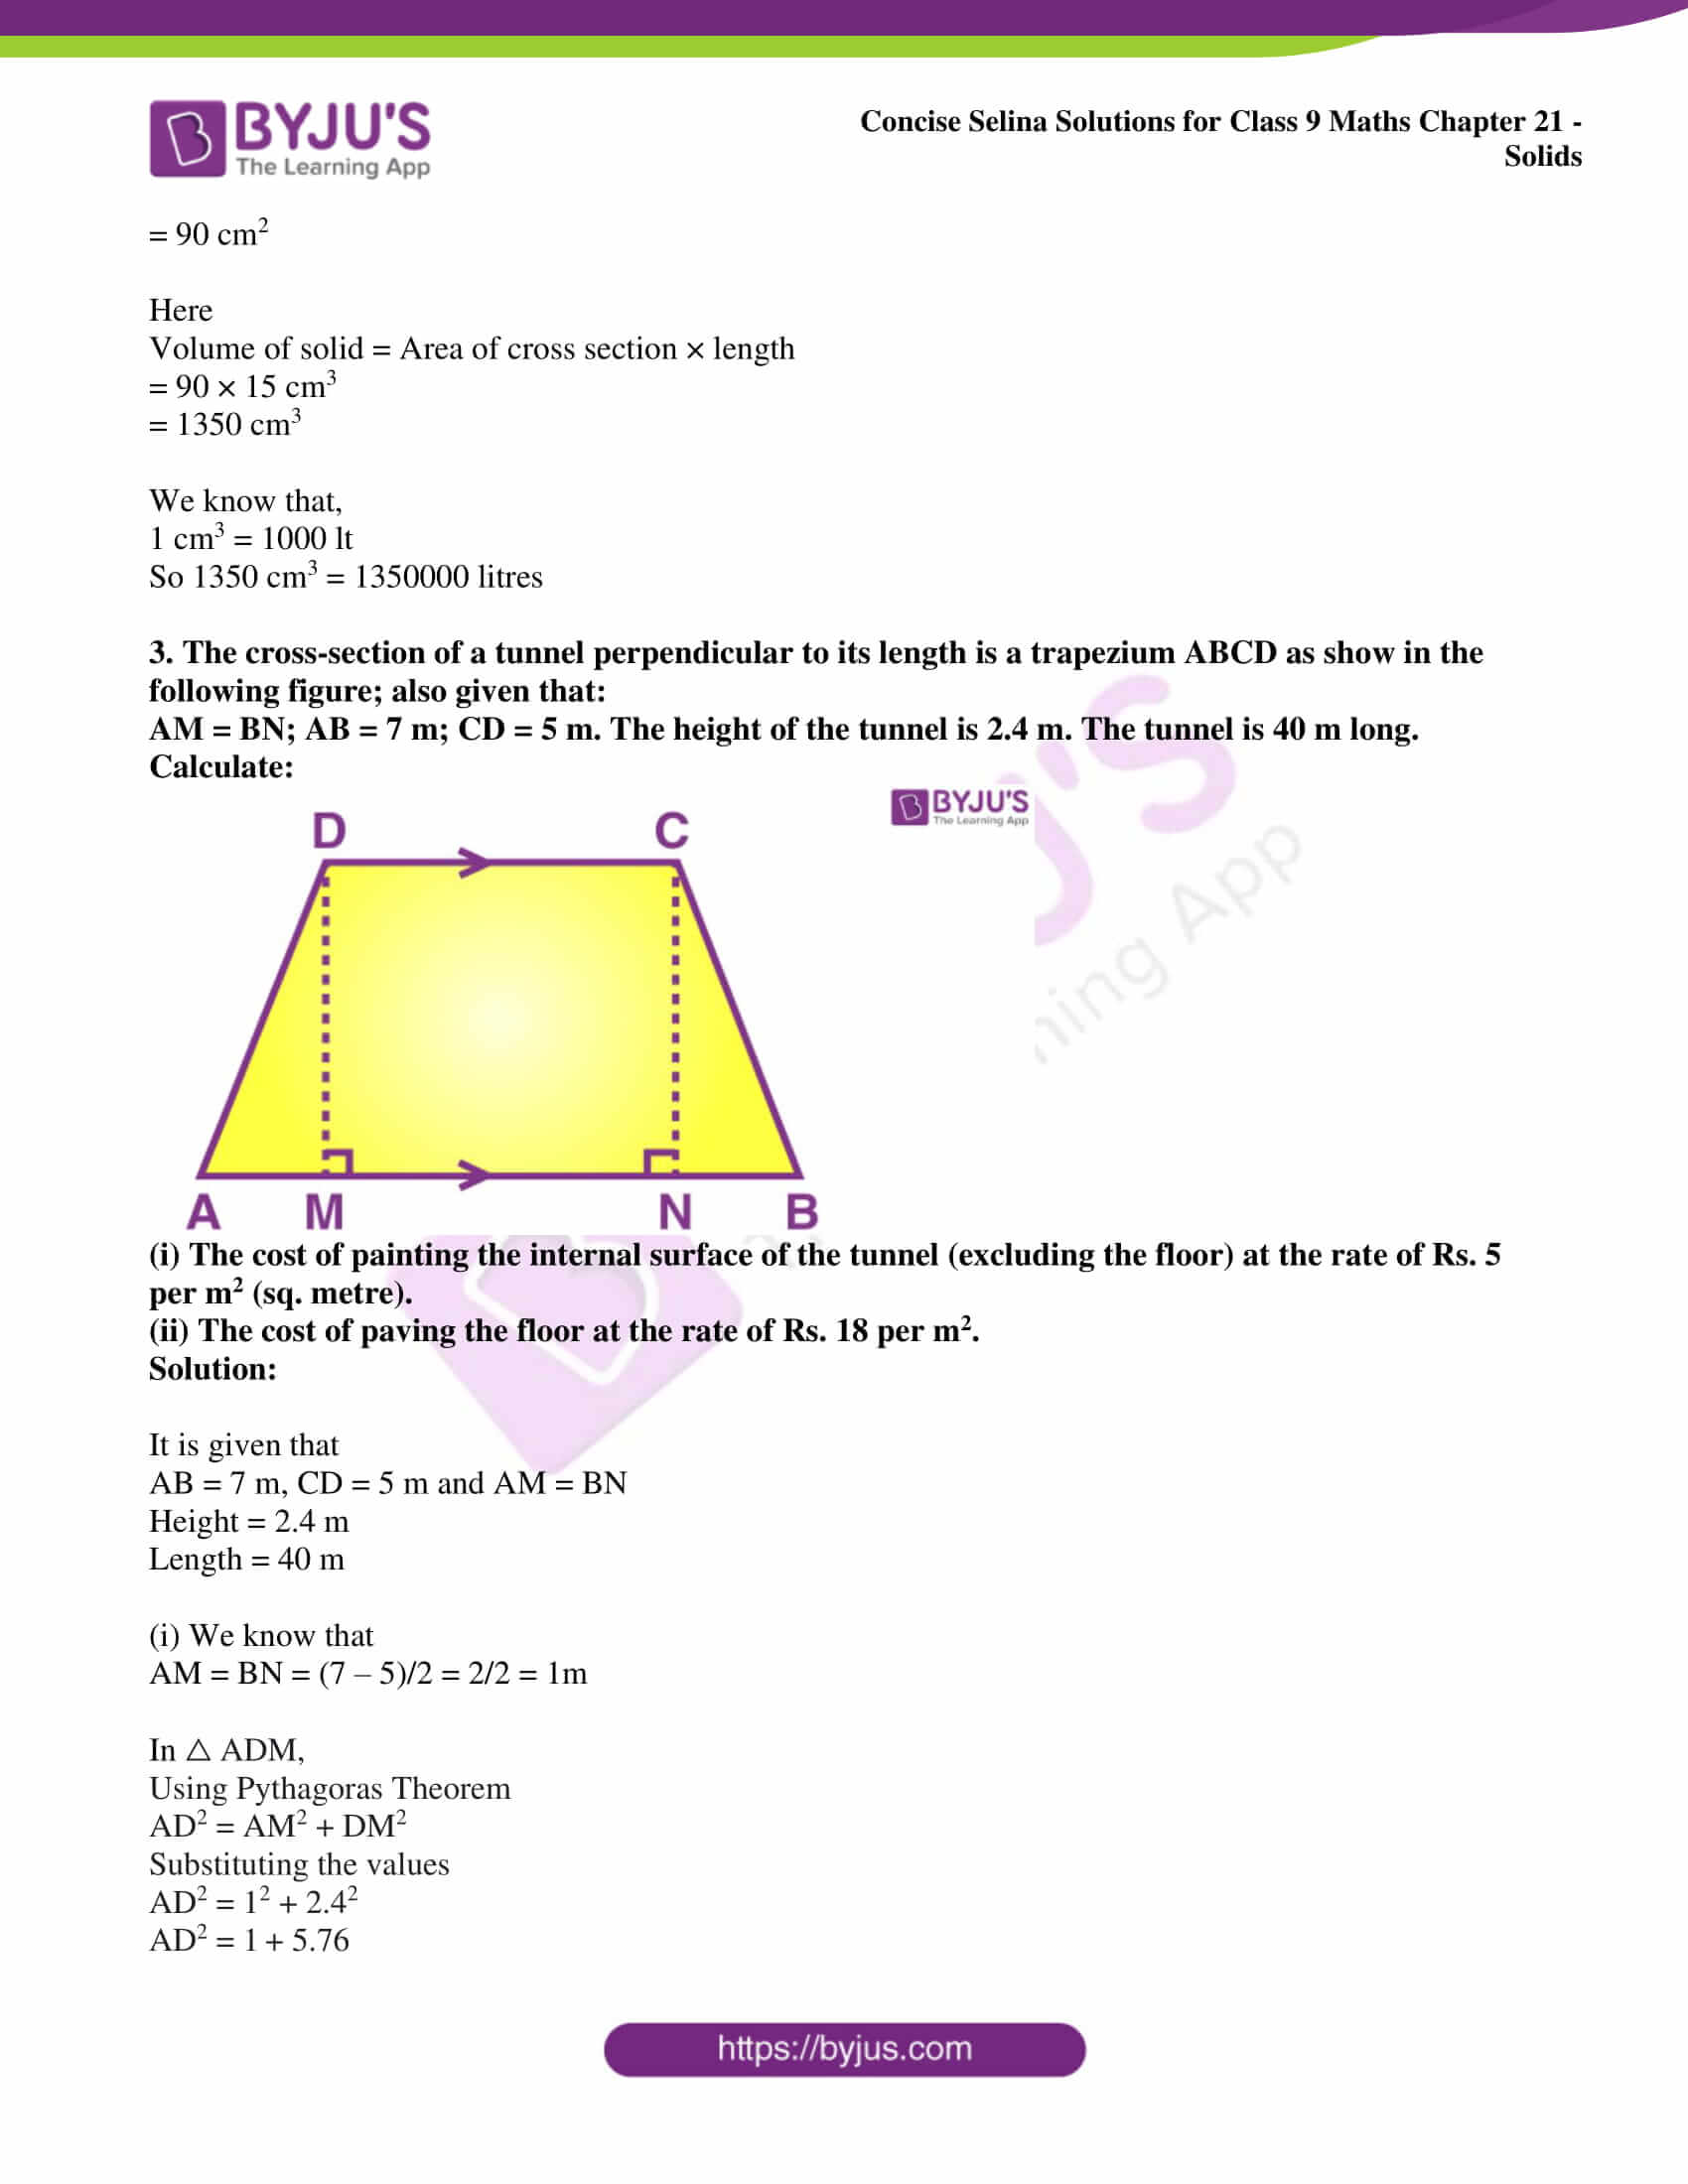 icse class 9 maths may10 selina solutions chapter 21 solids 06